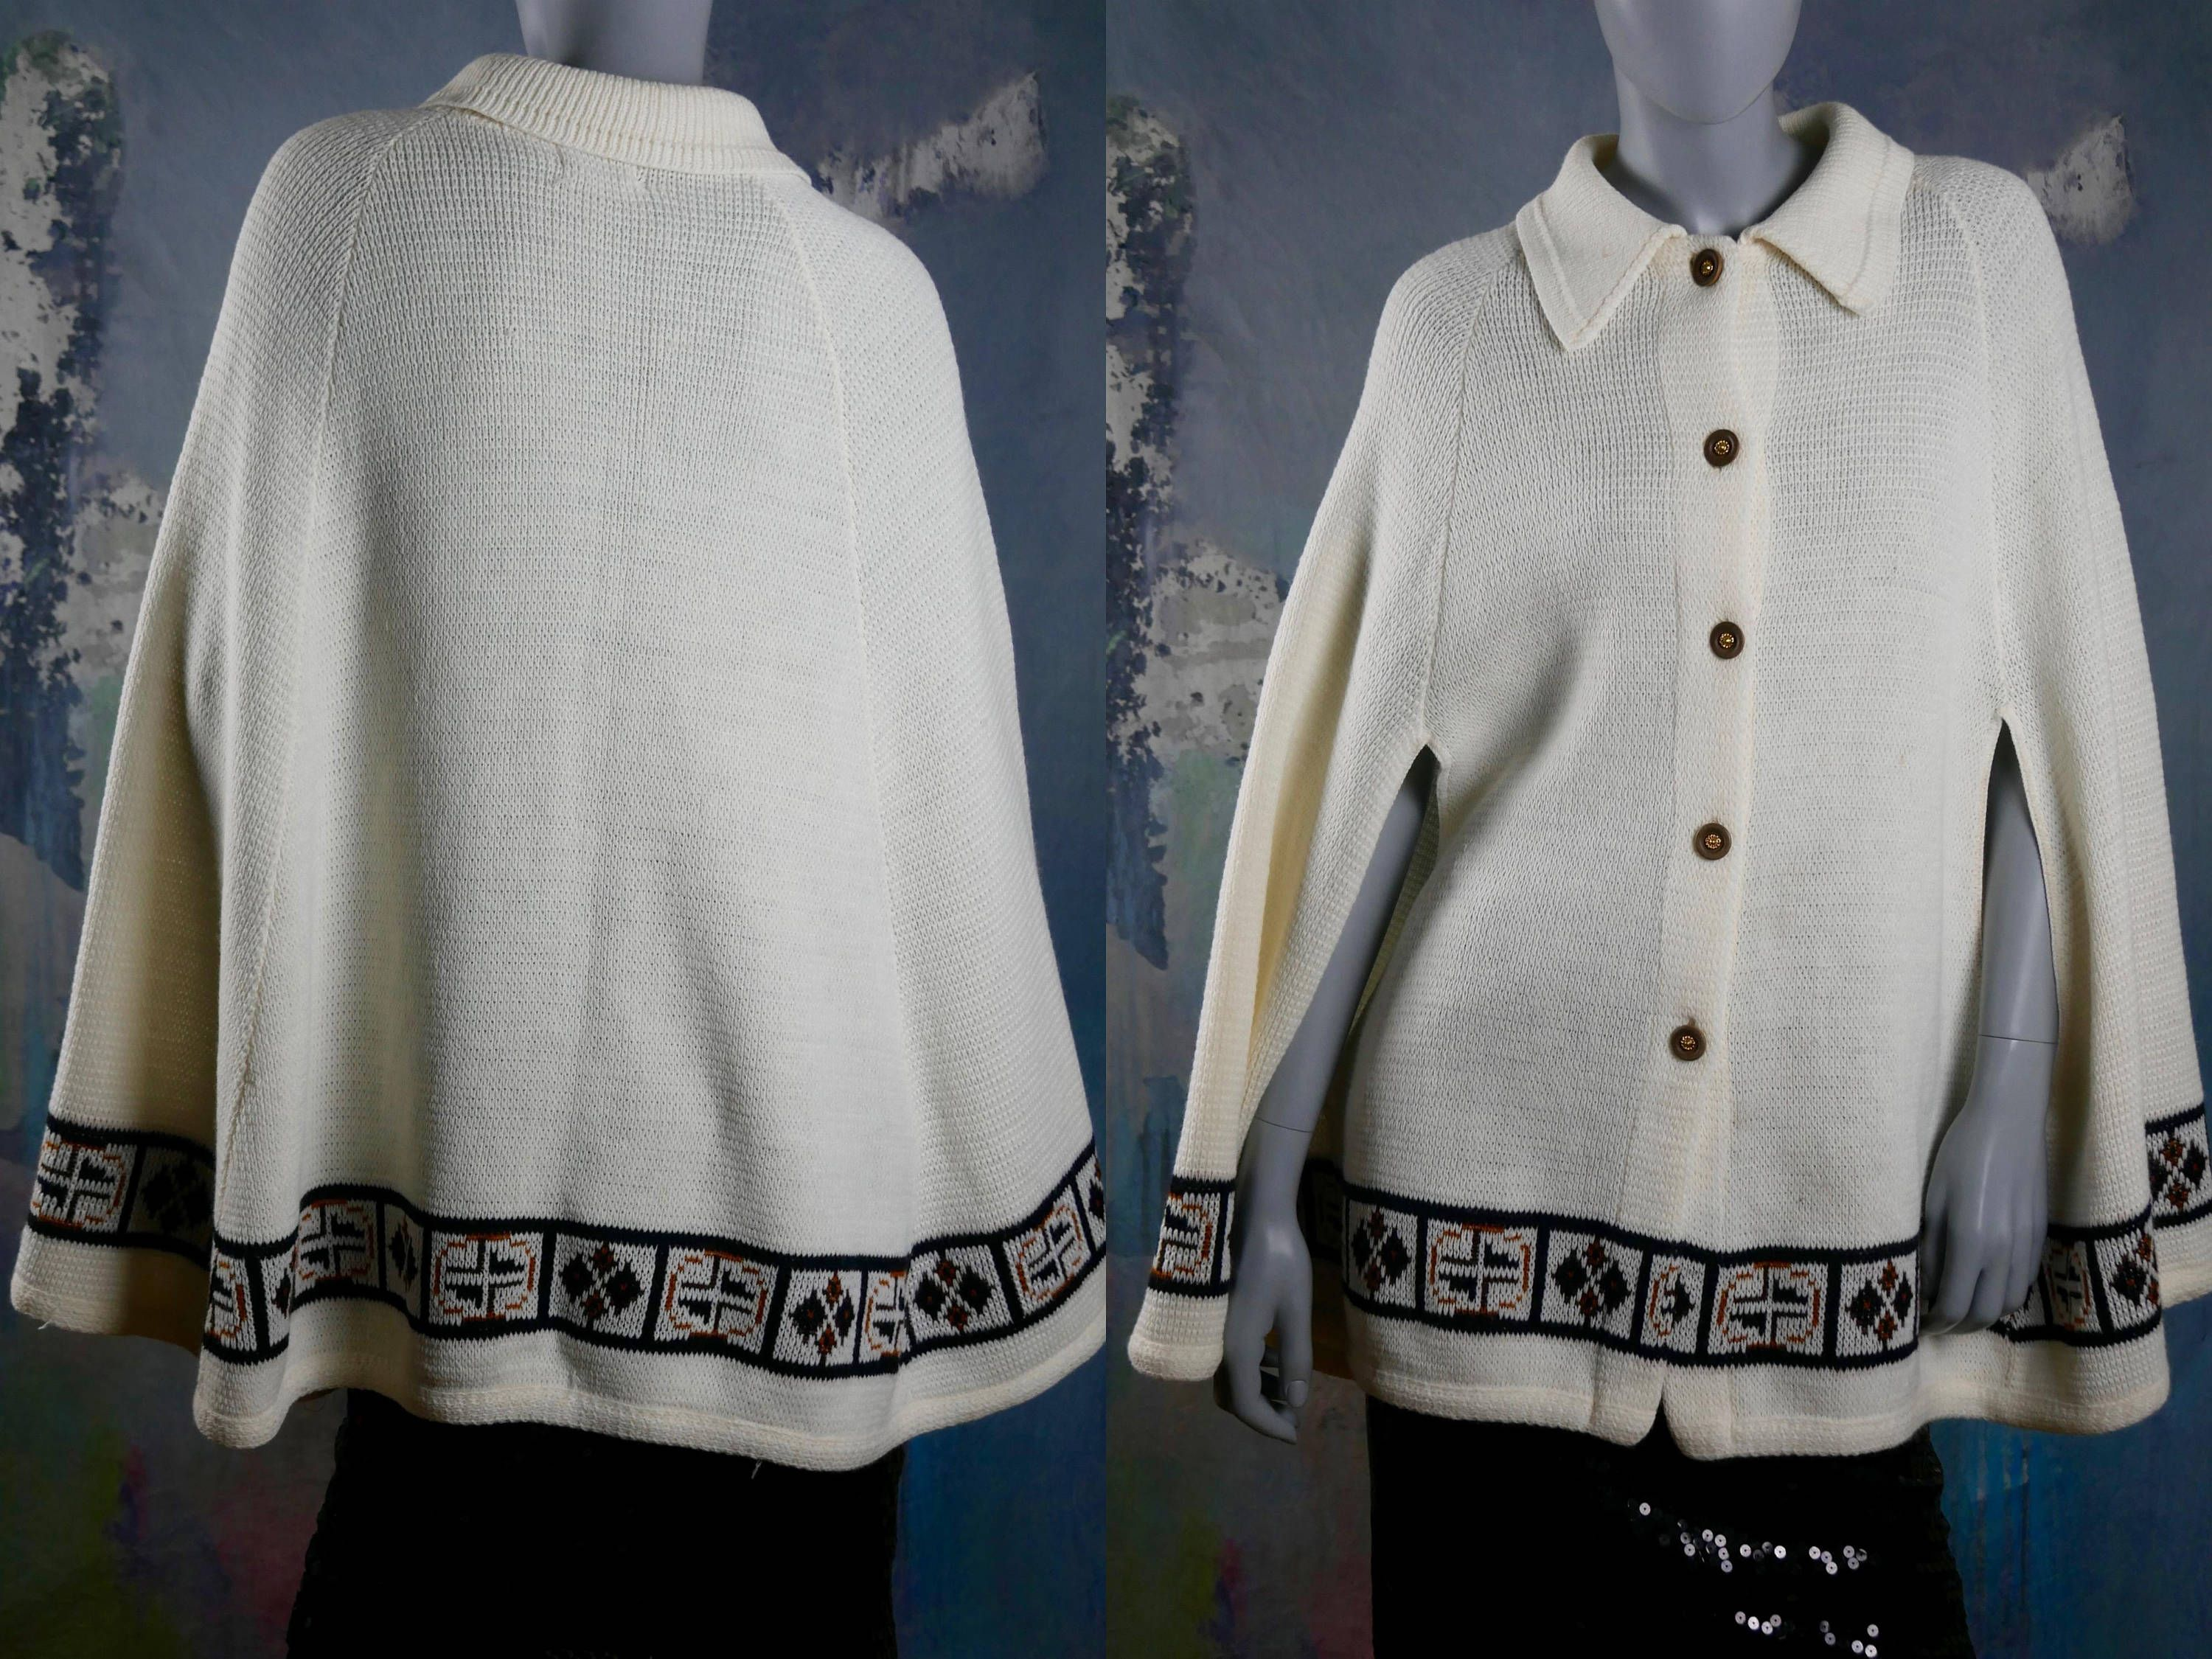 American Vintage Knit Poncho Winter White Button Down Cape Poncho W Brown And Rust Panel Band Of Nordic Symbols Size 8 10 Us 12 14 Uk Vintage Clothes Shop Vintage Clothes Women Knitted Poncho